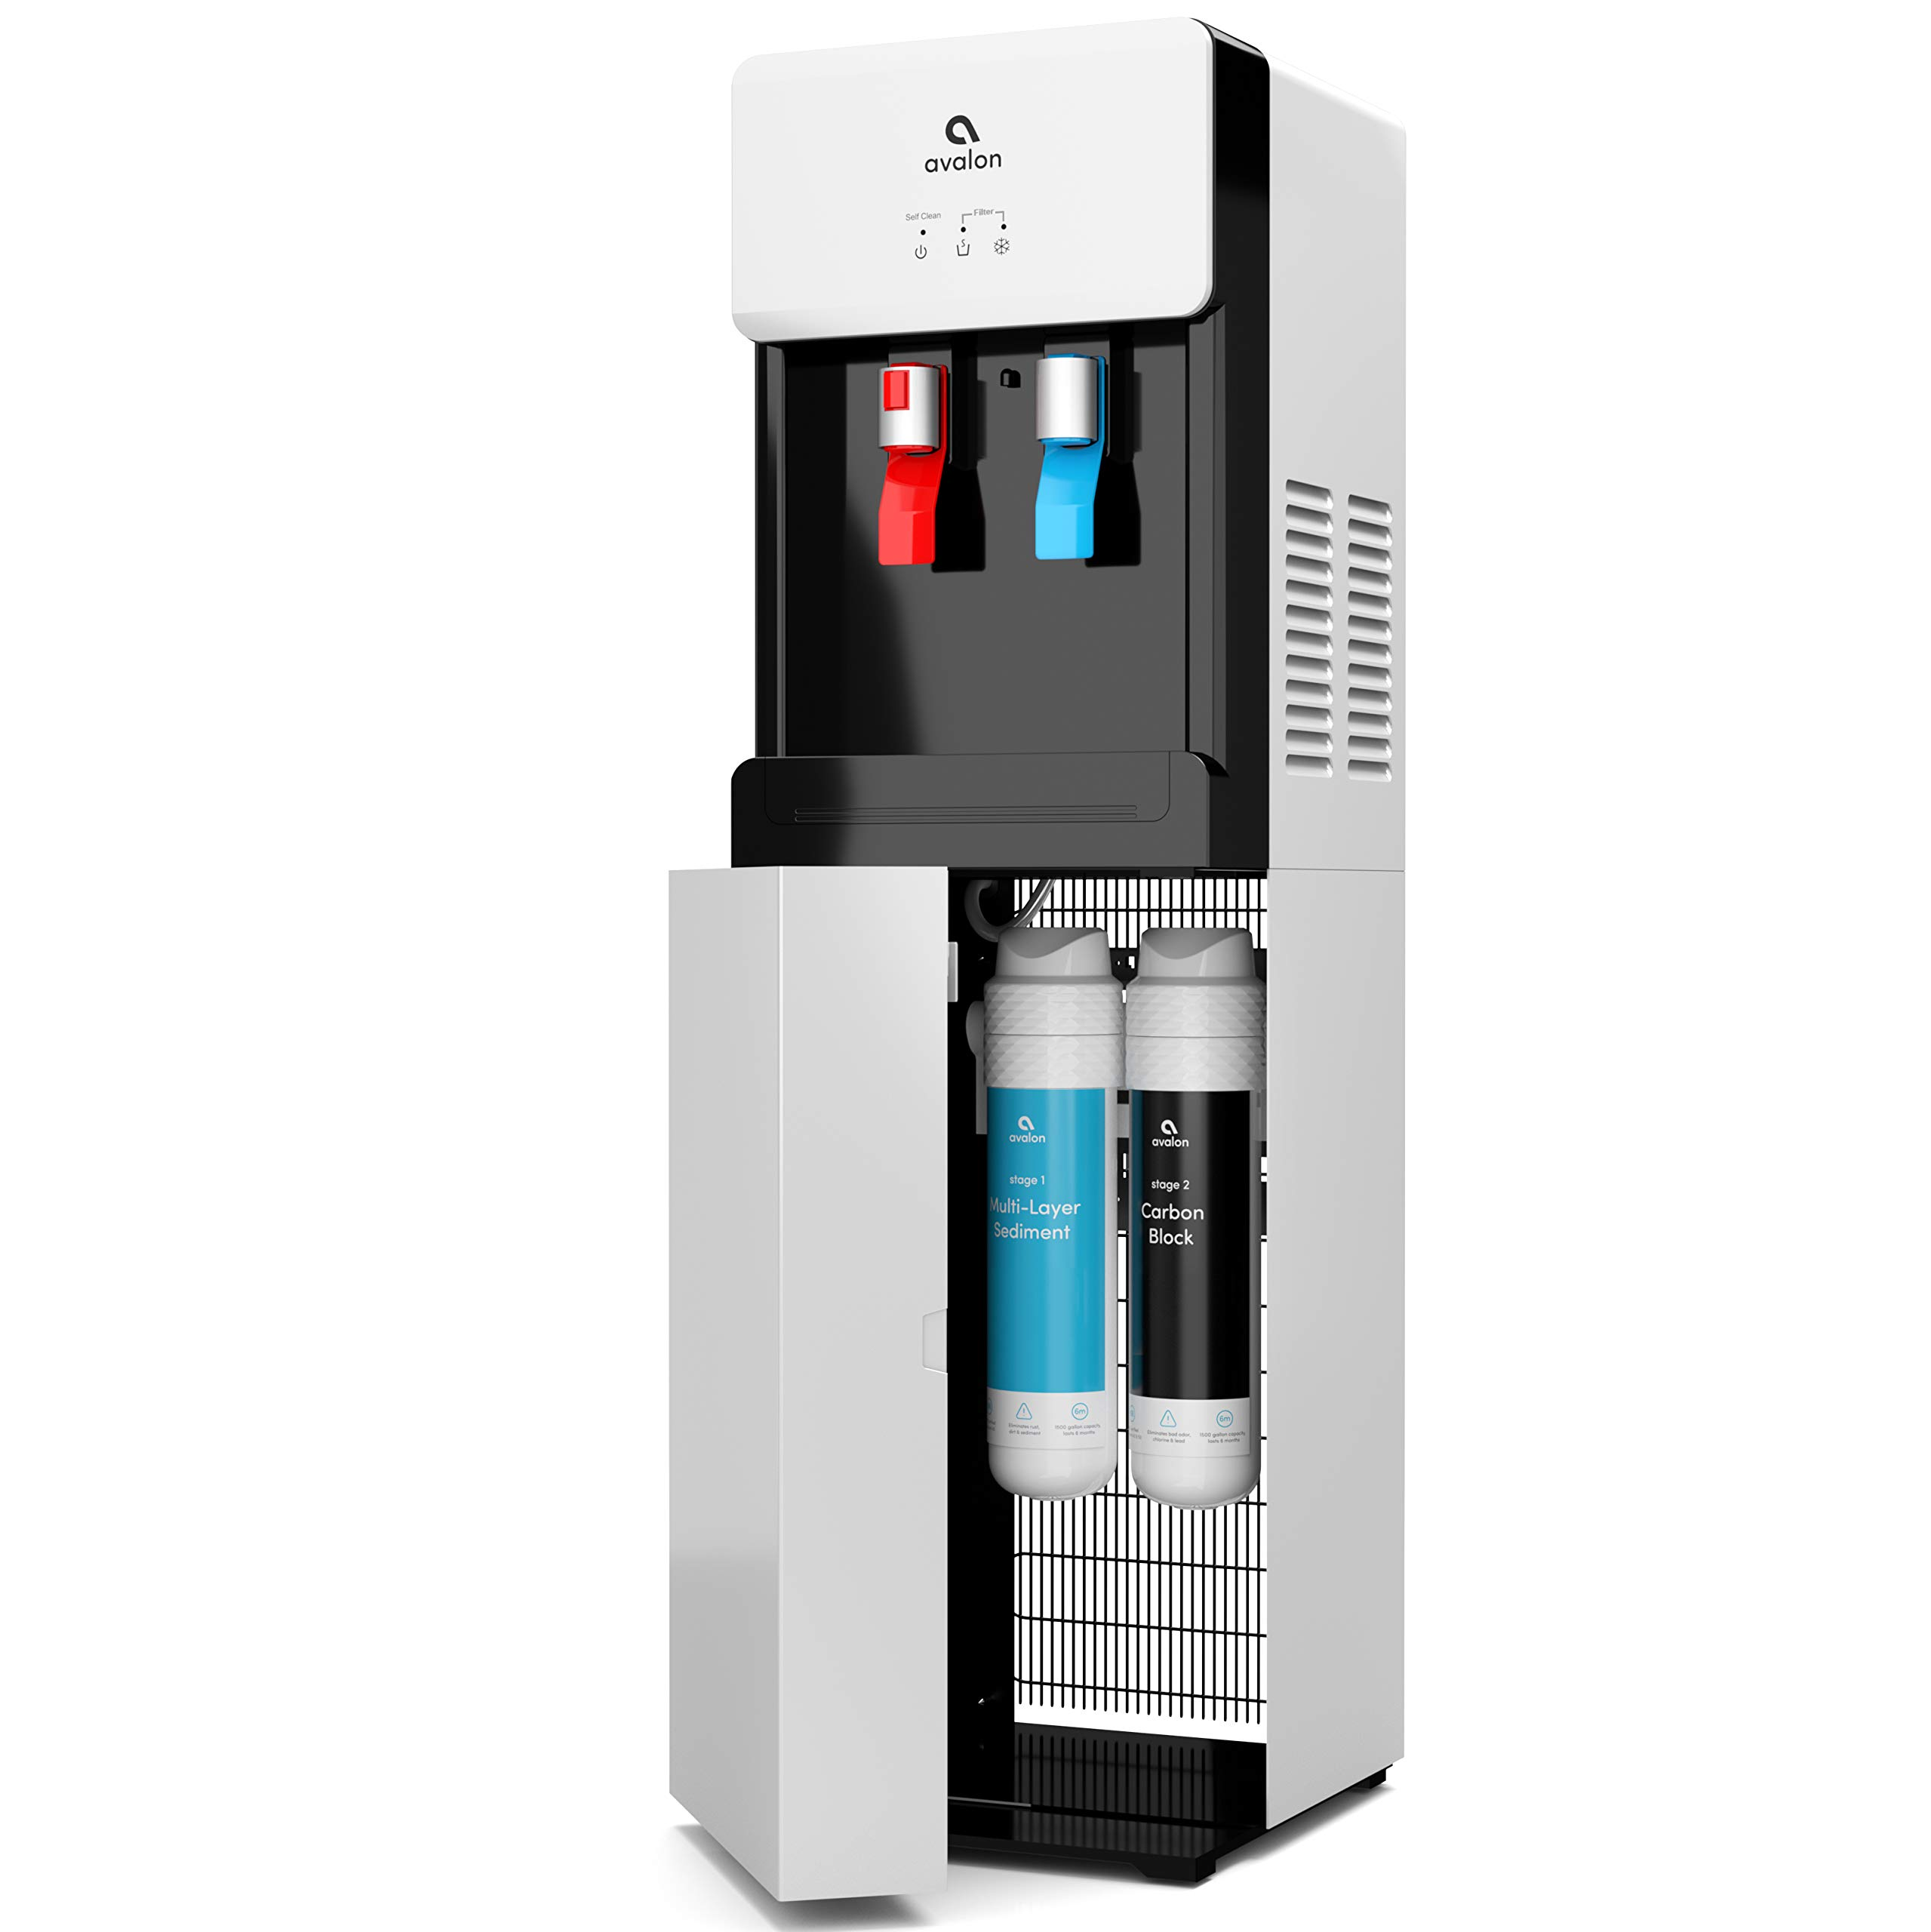 Avalon Self Cleaning Bottleless Water Cooler Dispenser - Hot & Cold Water, Child Safety Lock, Innovative Slim Design - UL/Energy Star Approved- White - A7BOTTLELESSWHT by Avalon